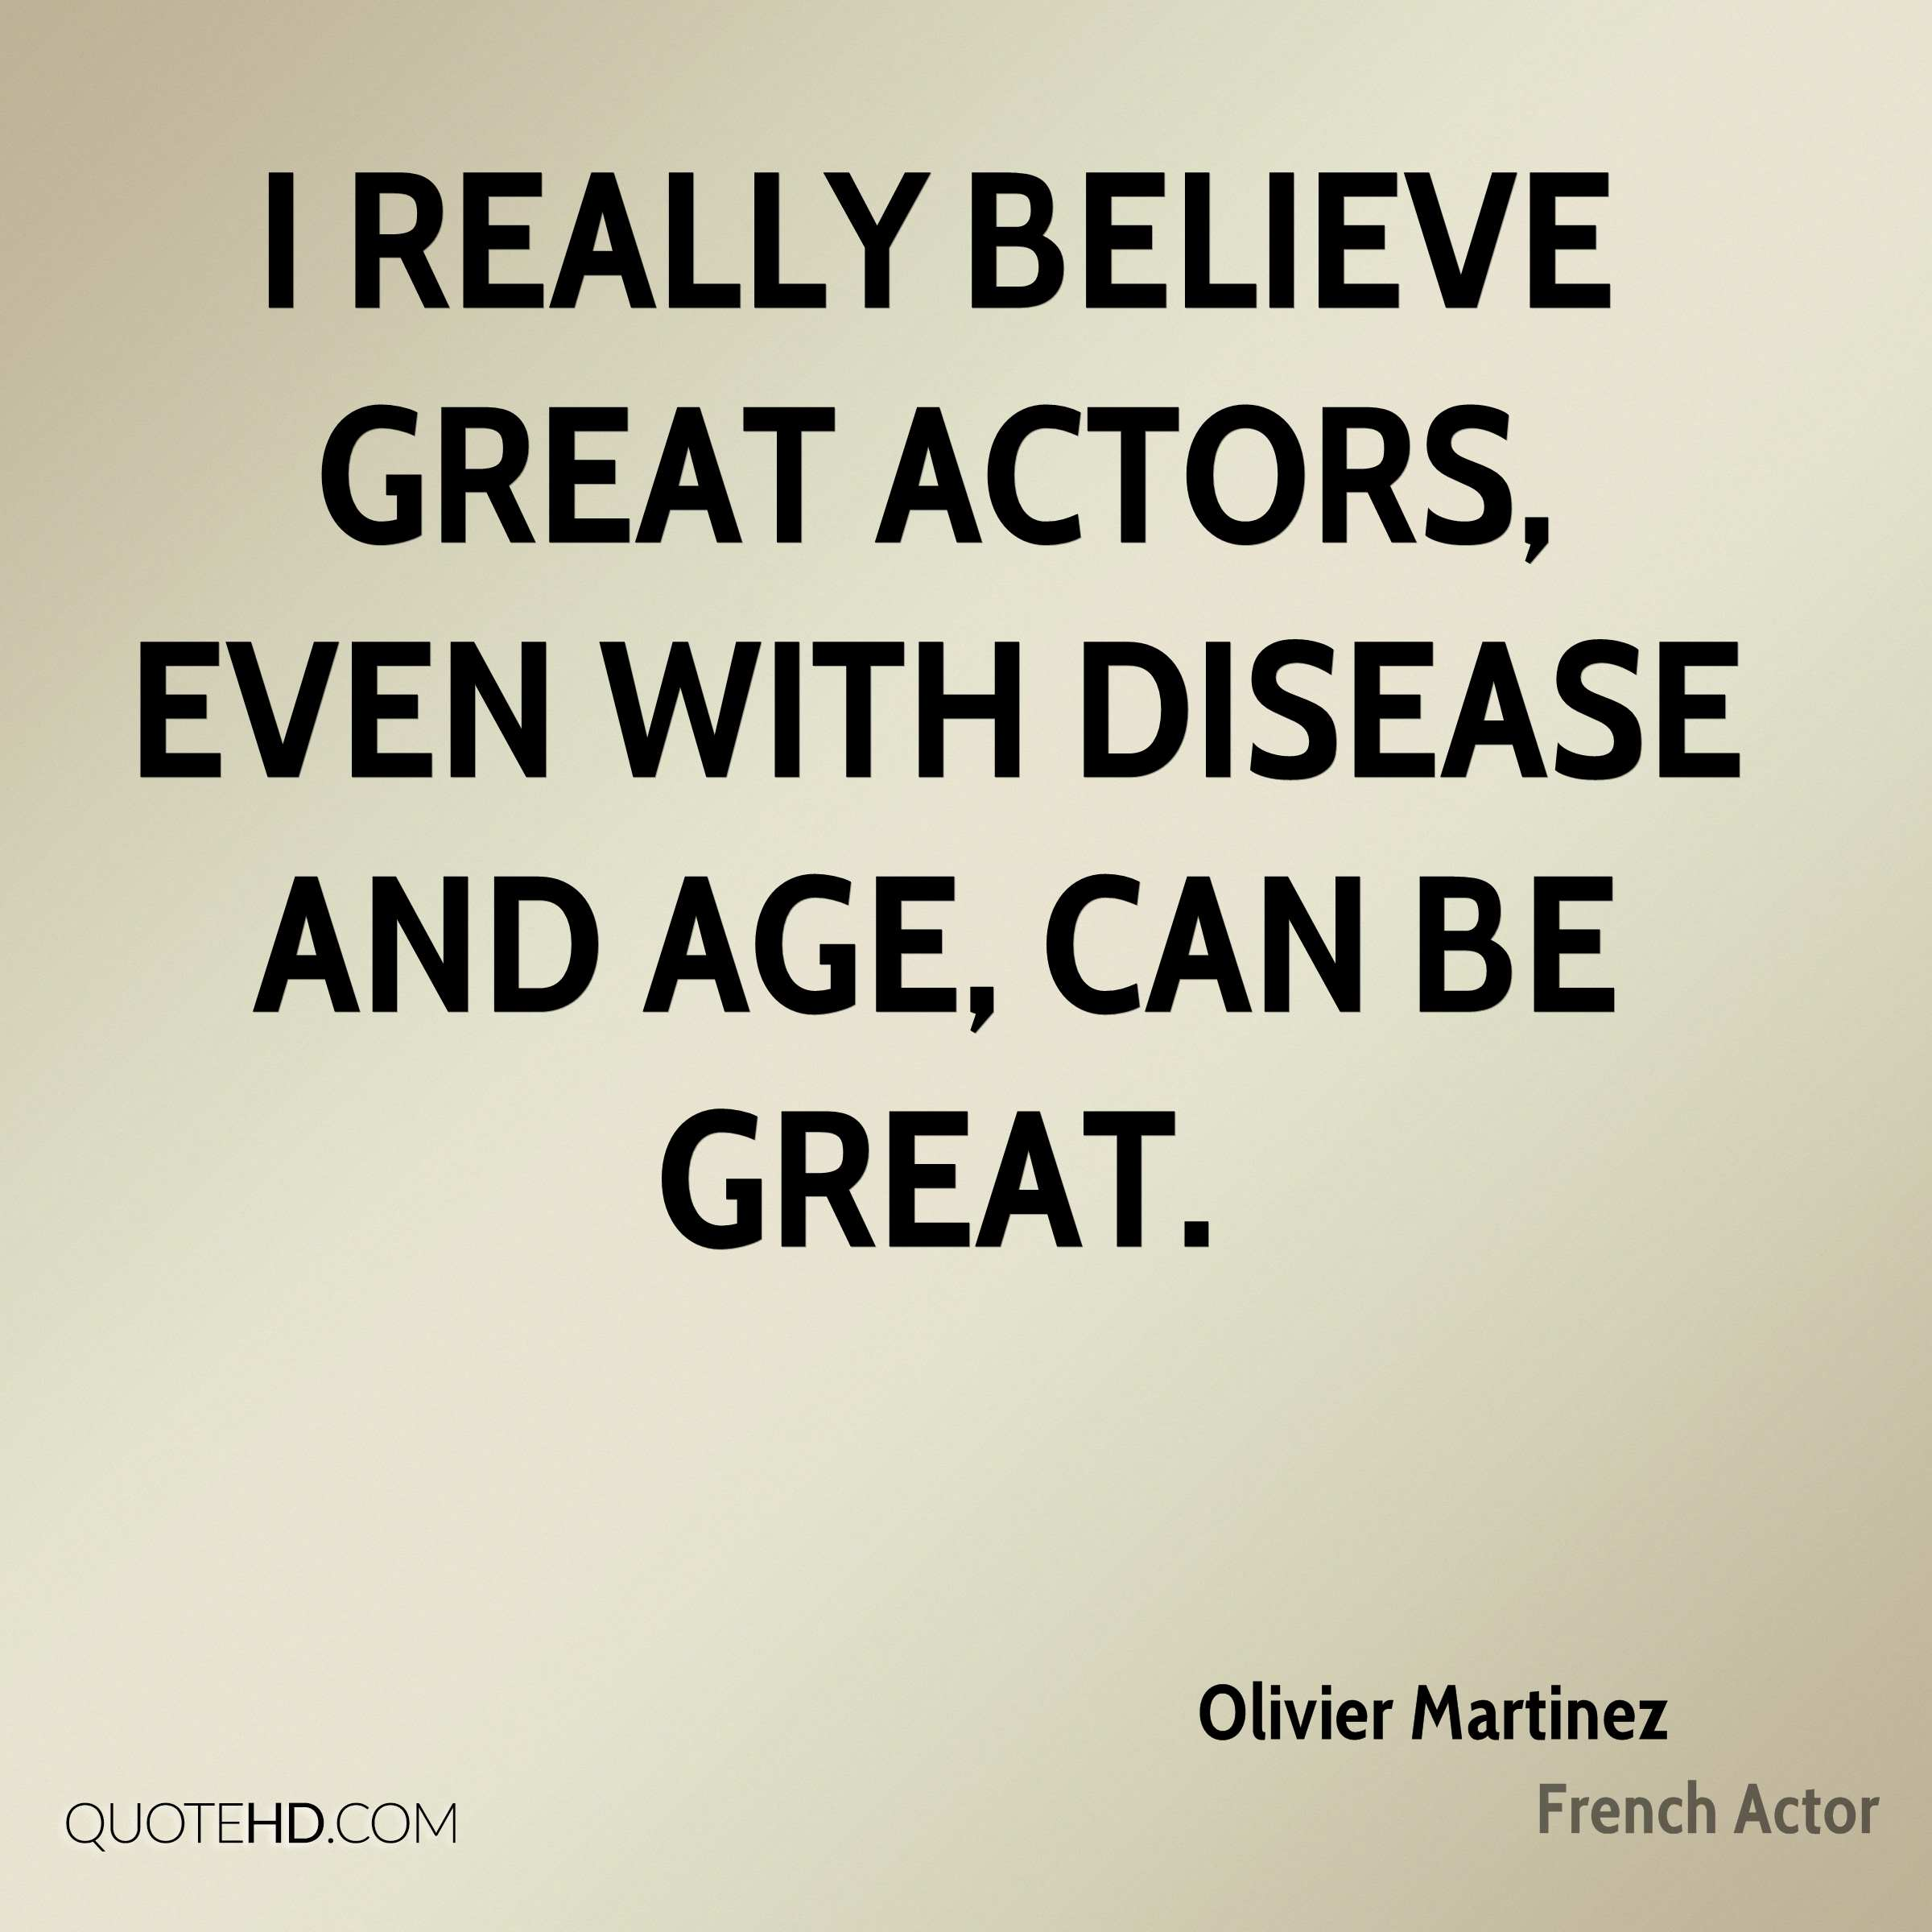 I really believe great actors, even with disease and age, can be great.